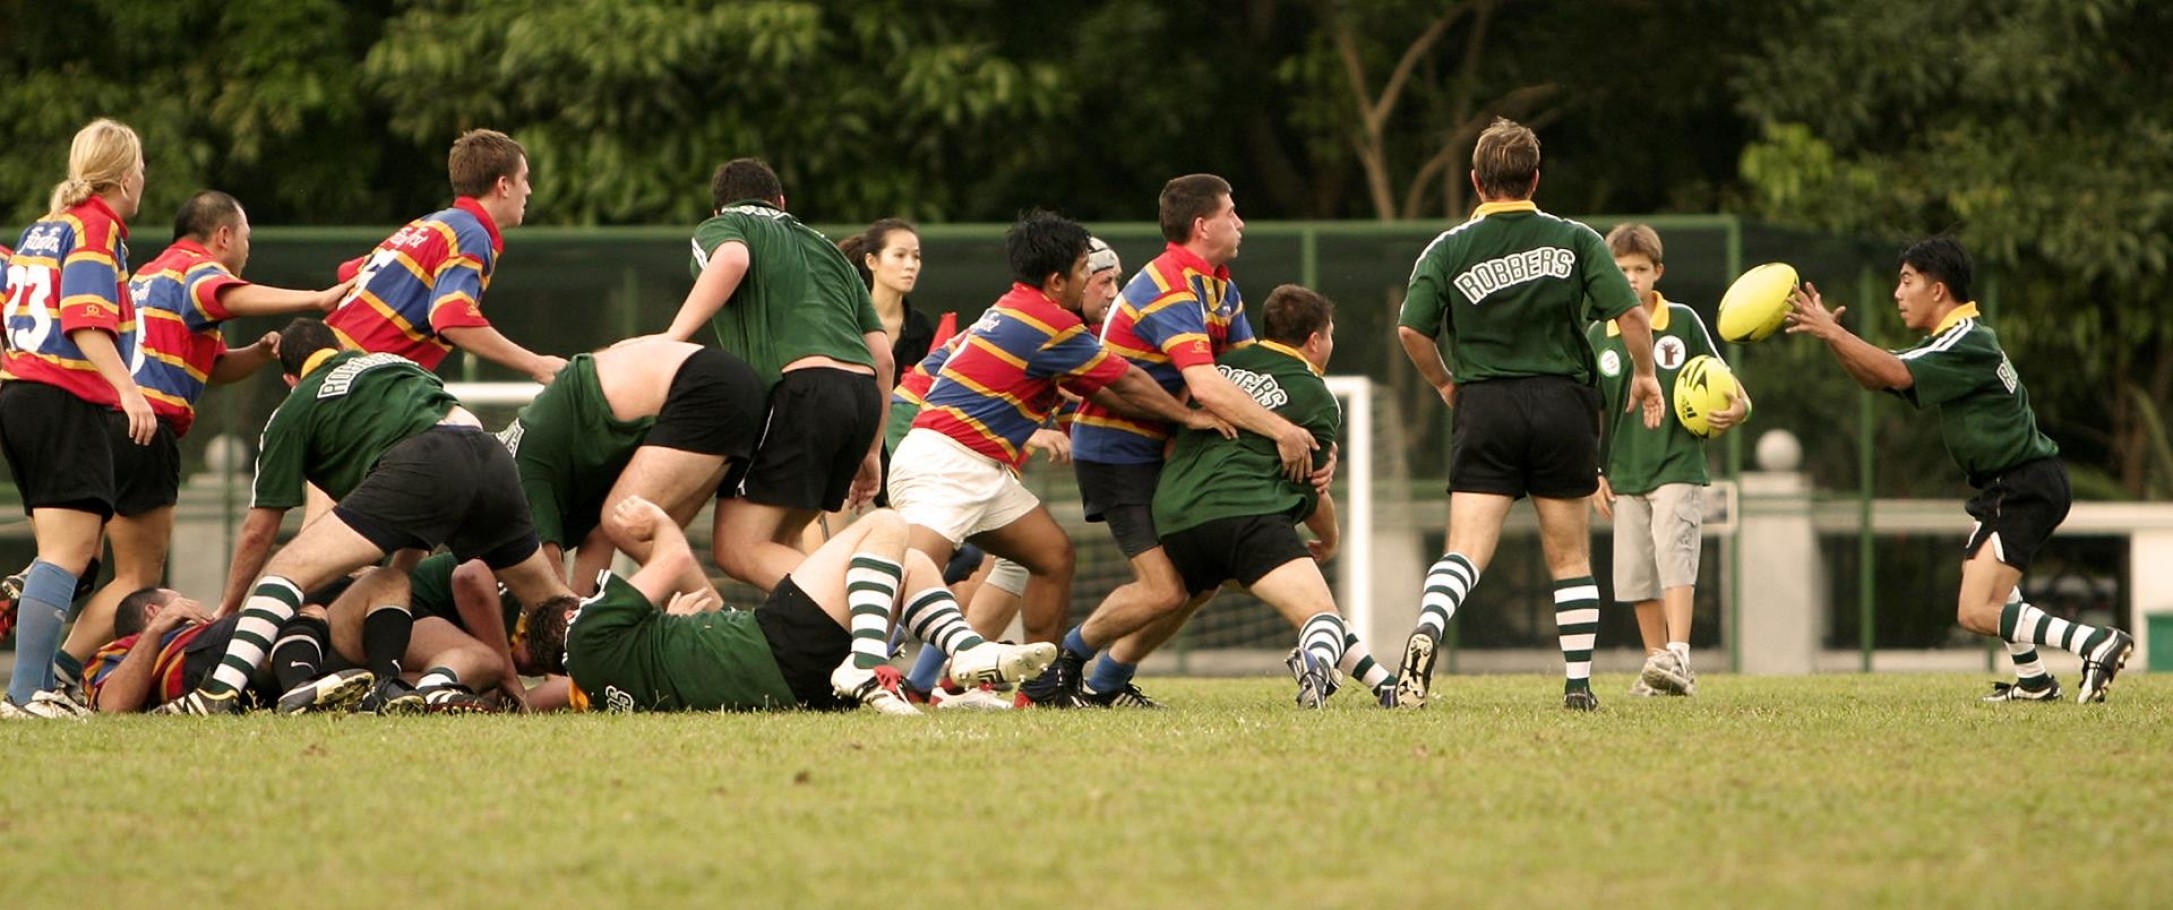 Collapsed Rugby scrum